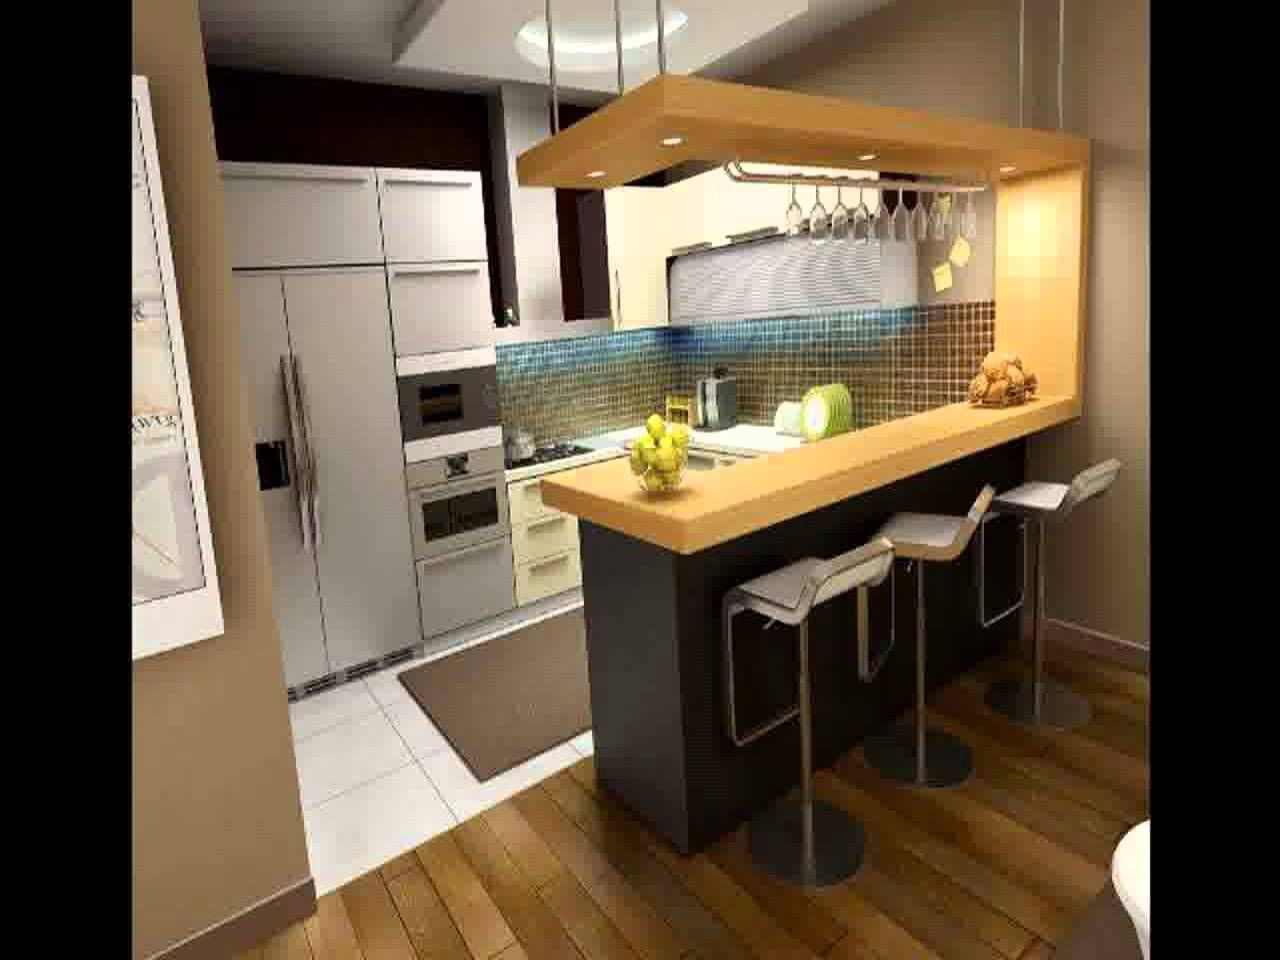 Kitchen design video intended for motivate ideas home design